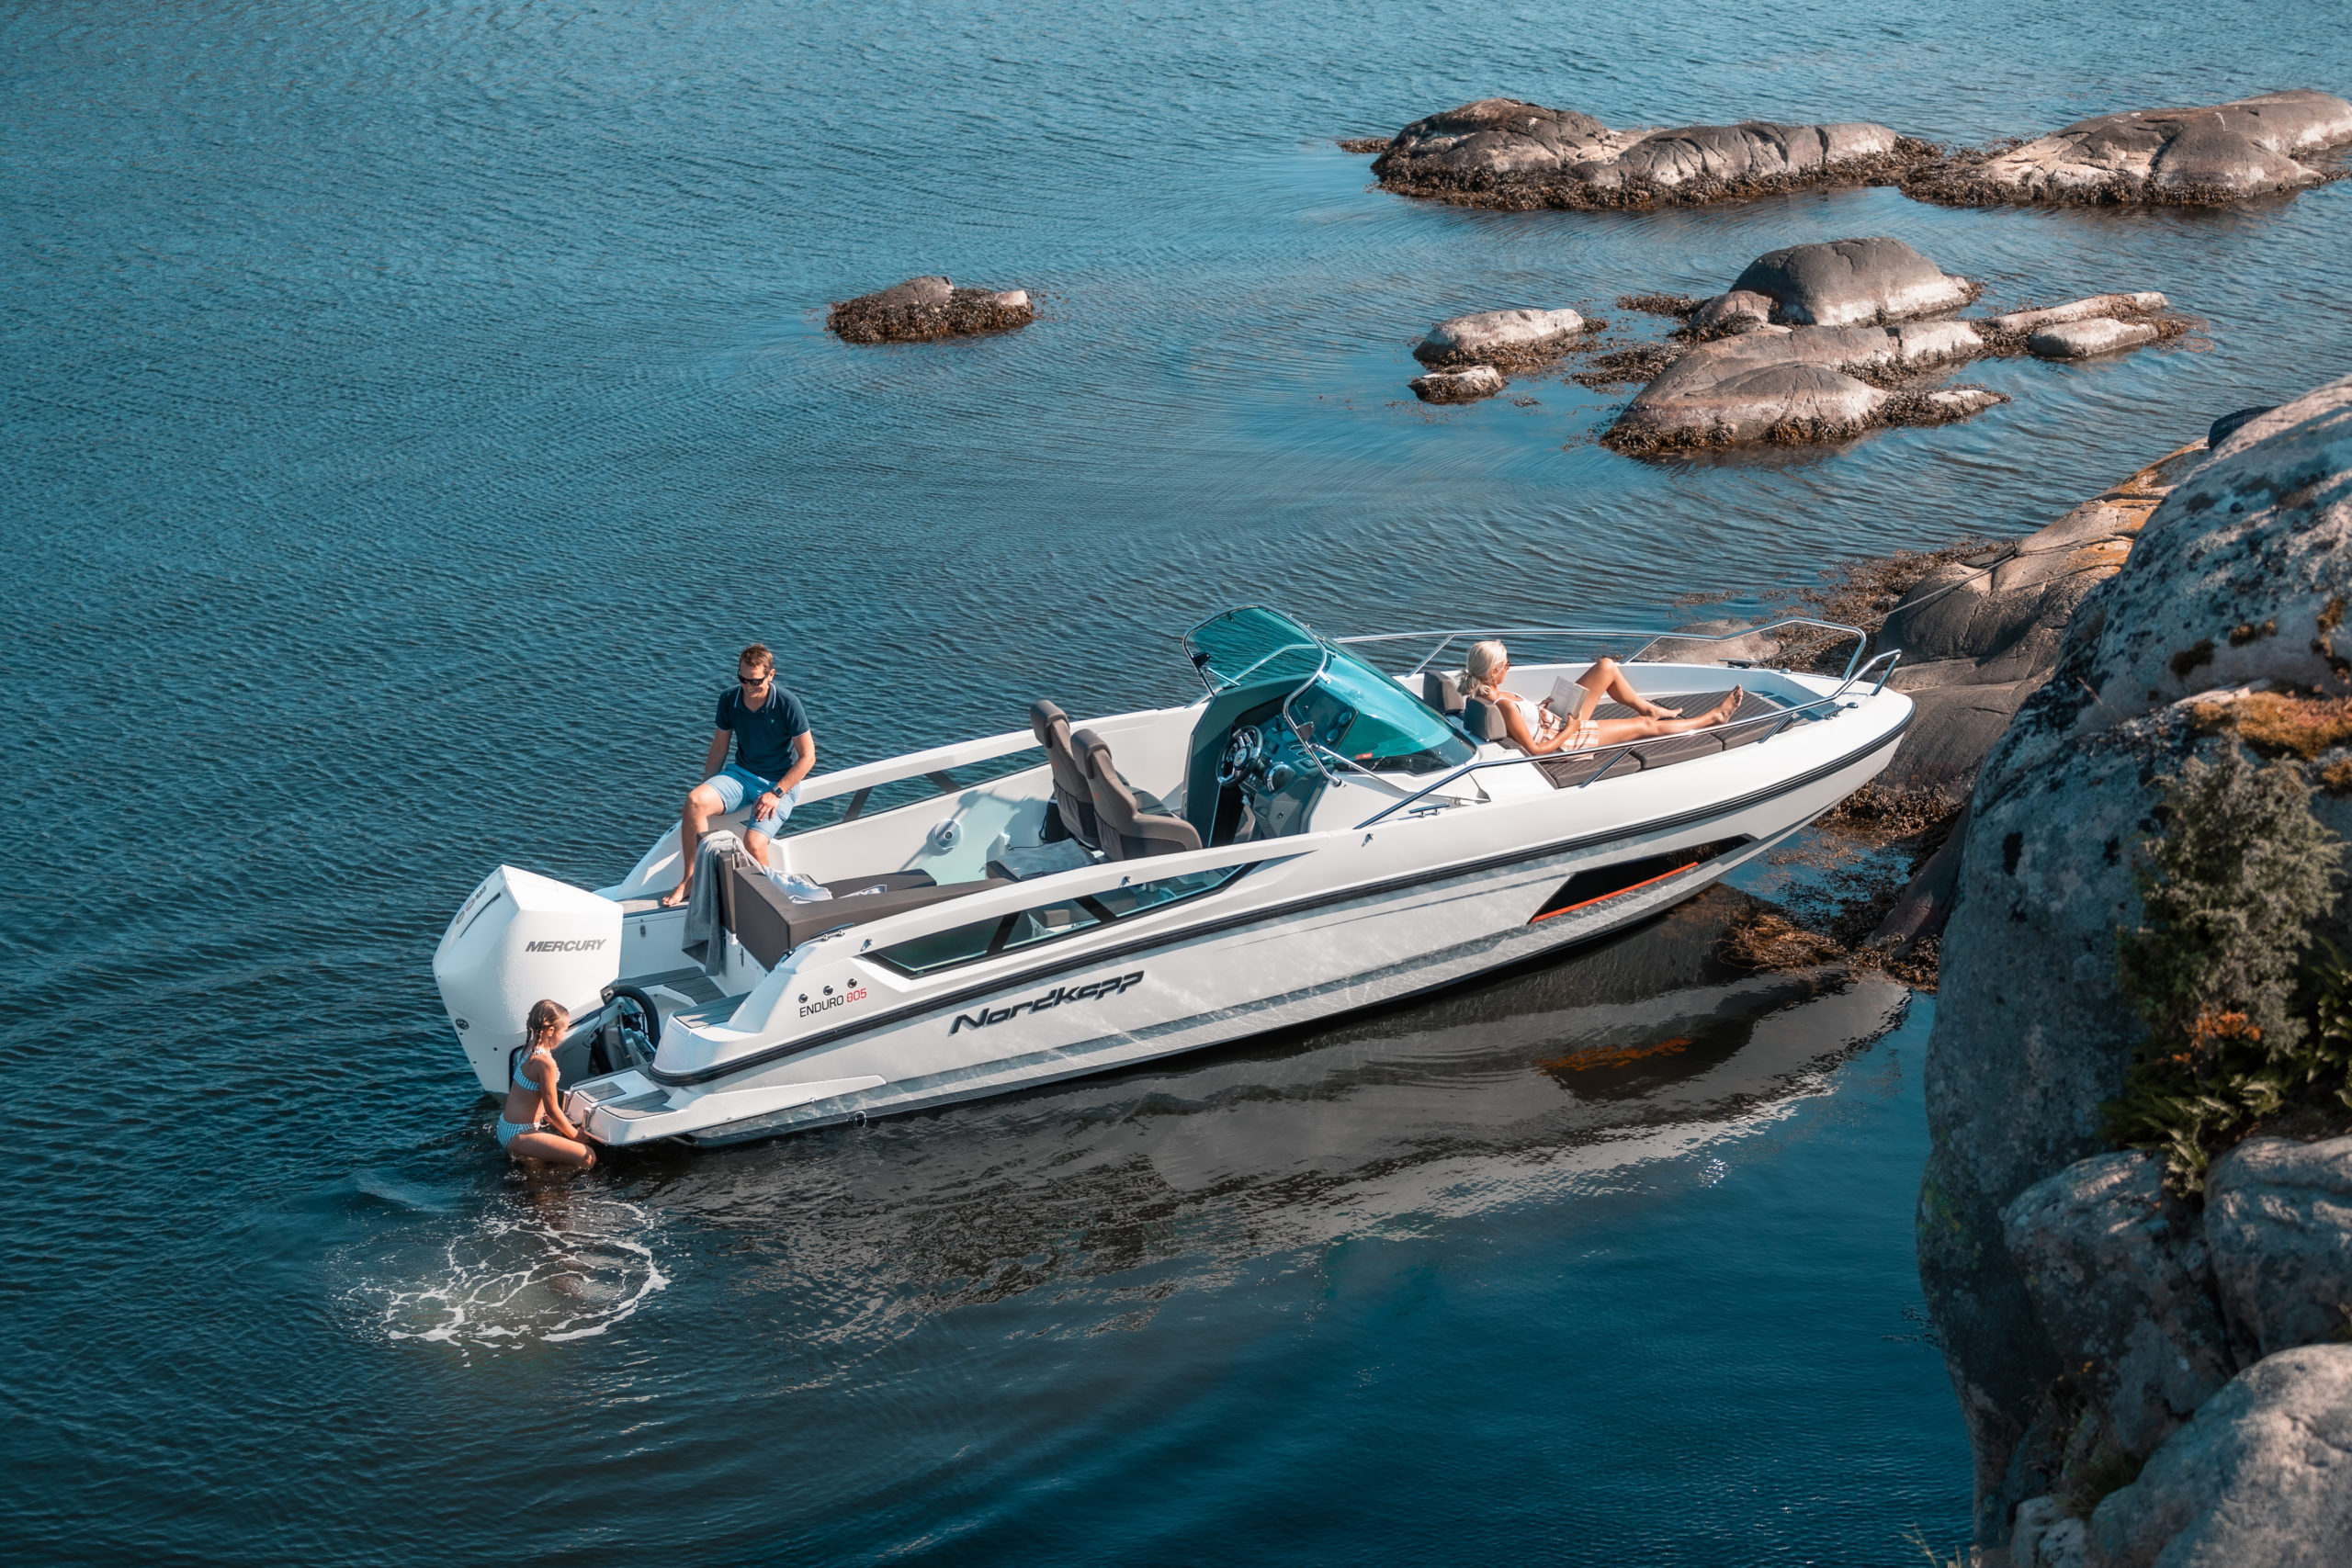 Enduro 805 docked - boat overview with swimming